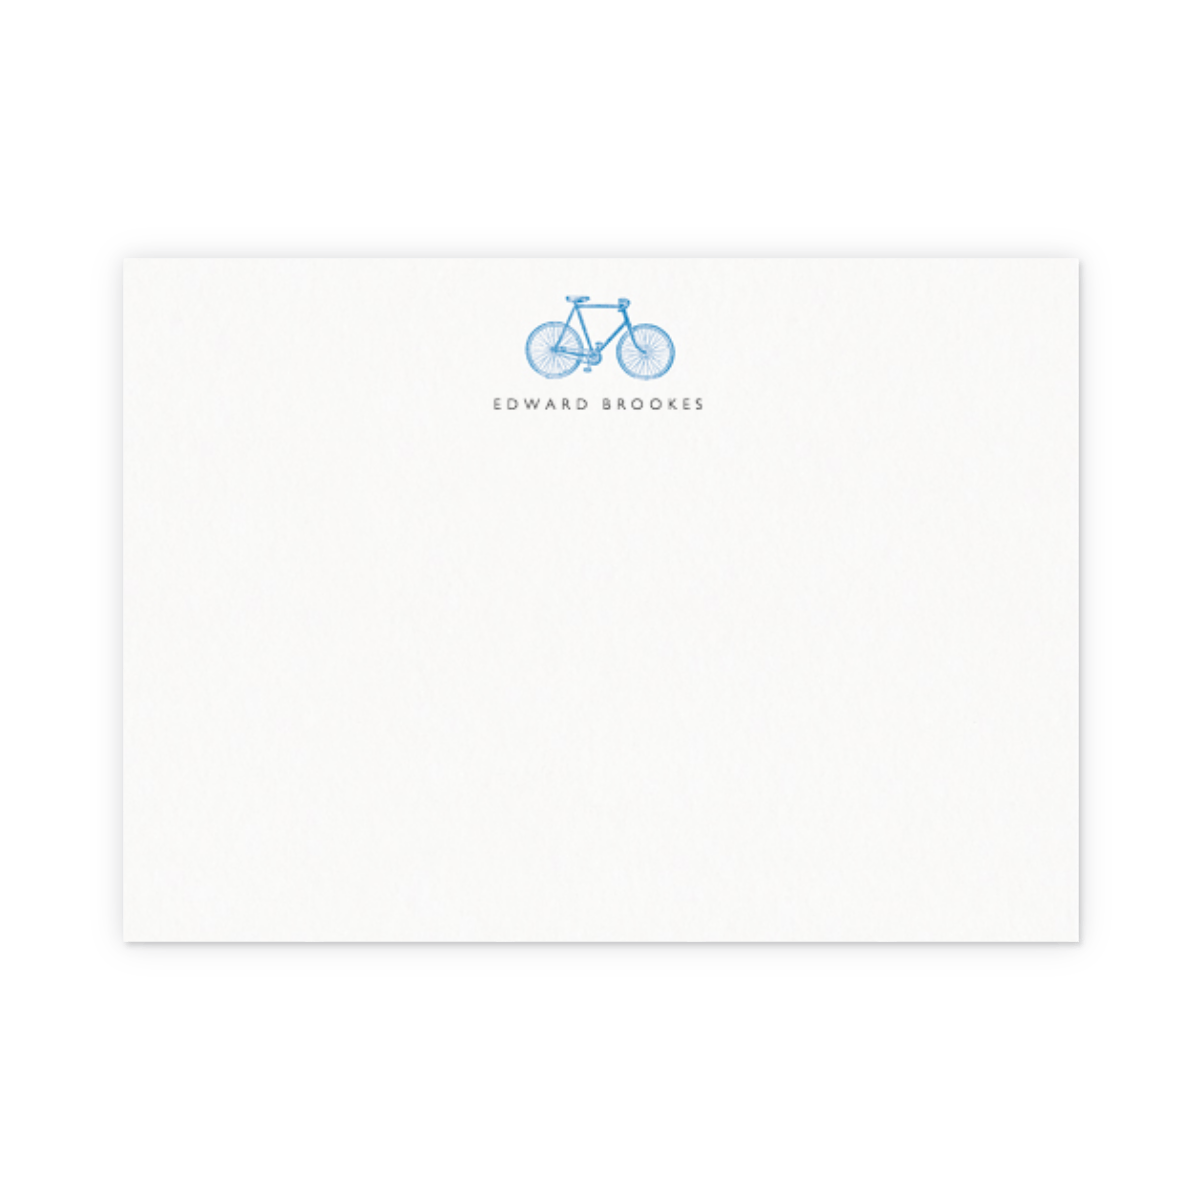 Https%3a%2f%2fwww.papier.com%2fproduct image%2f5256%2f10%2fbicycle 1367 front 1534930614.png?ixlib=rb 1.1